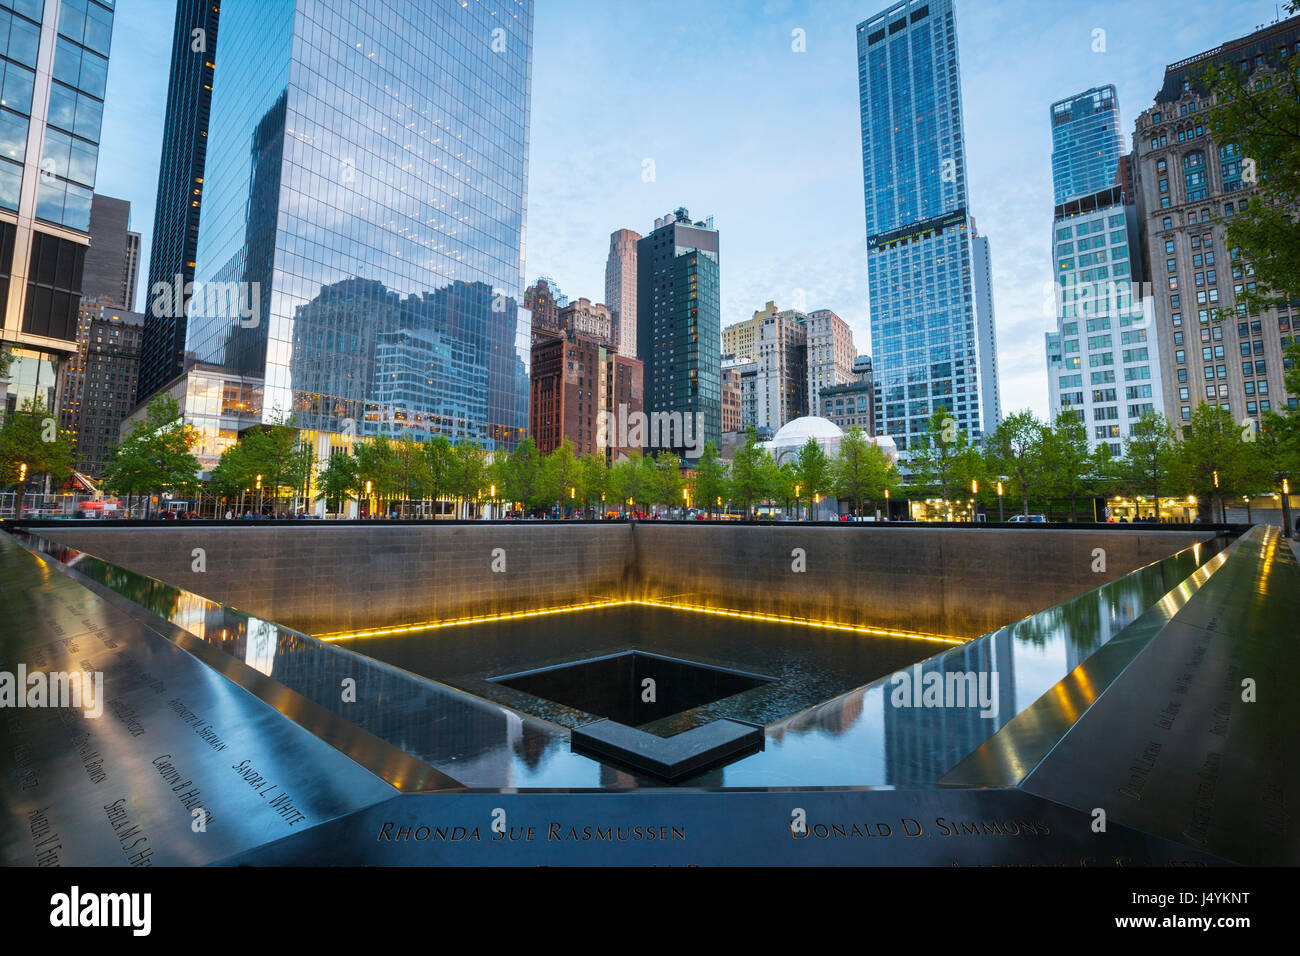 9/11 Memorial, The National September 11 Memorial & Museum, New York - Stock Image